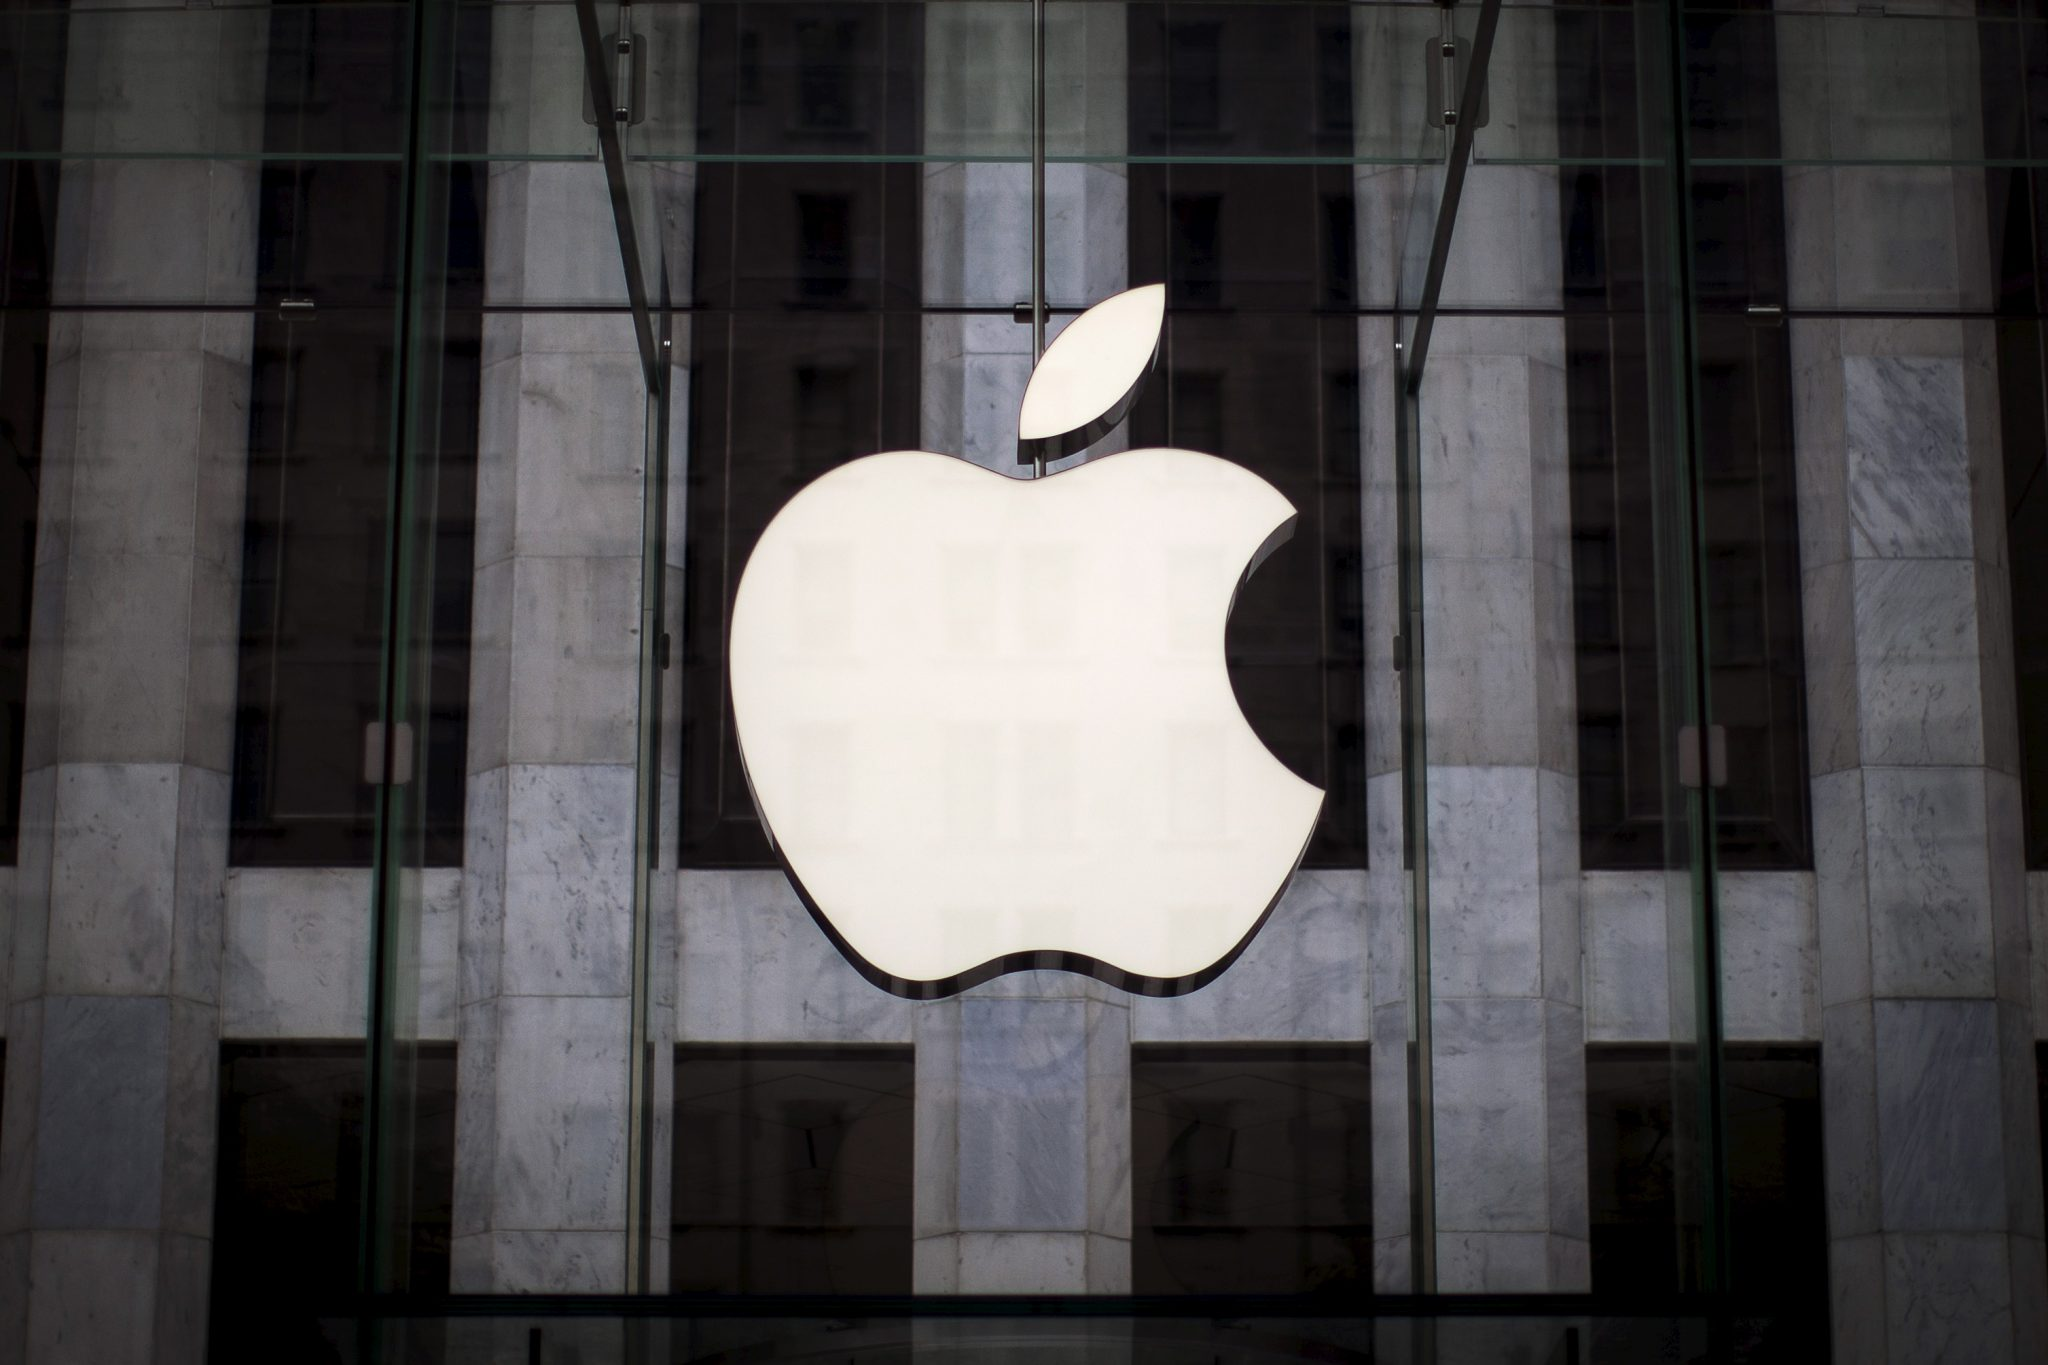 Apple Inc. quietly buys iCloud.net domain: Report (NASDAQ ...